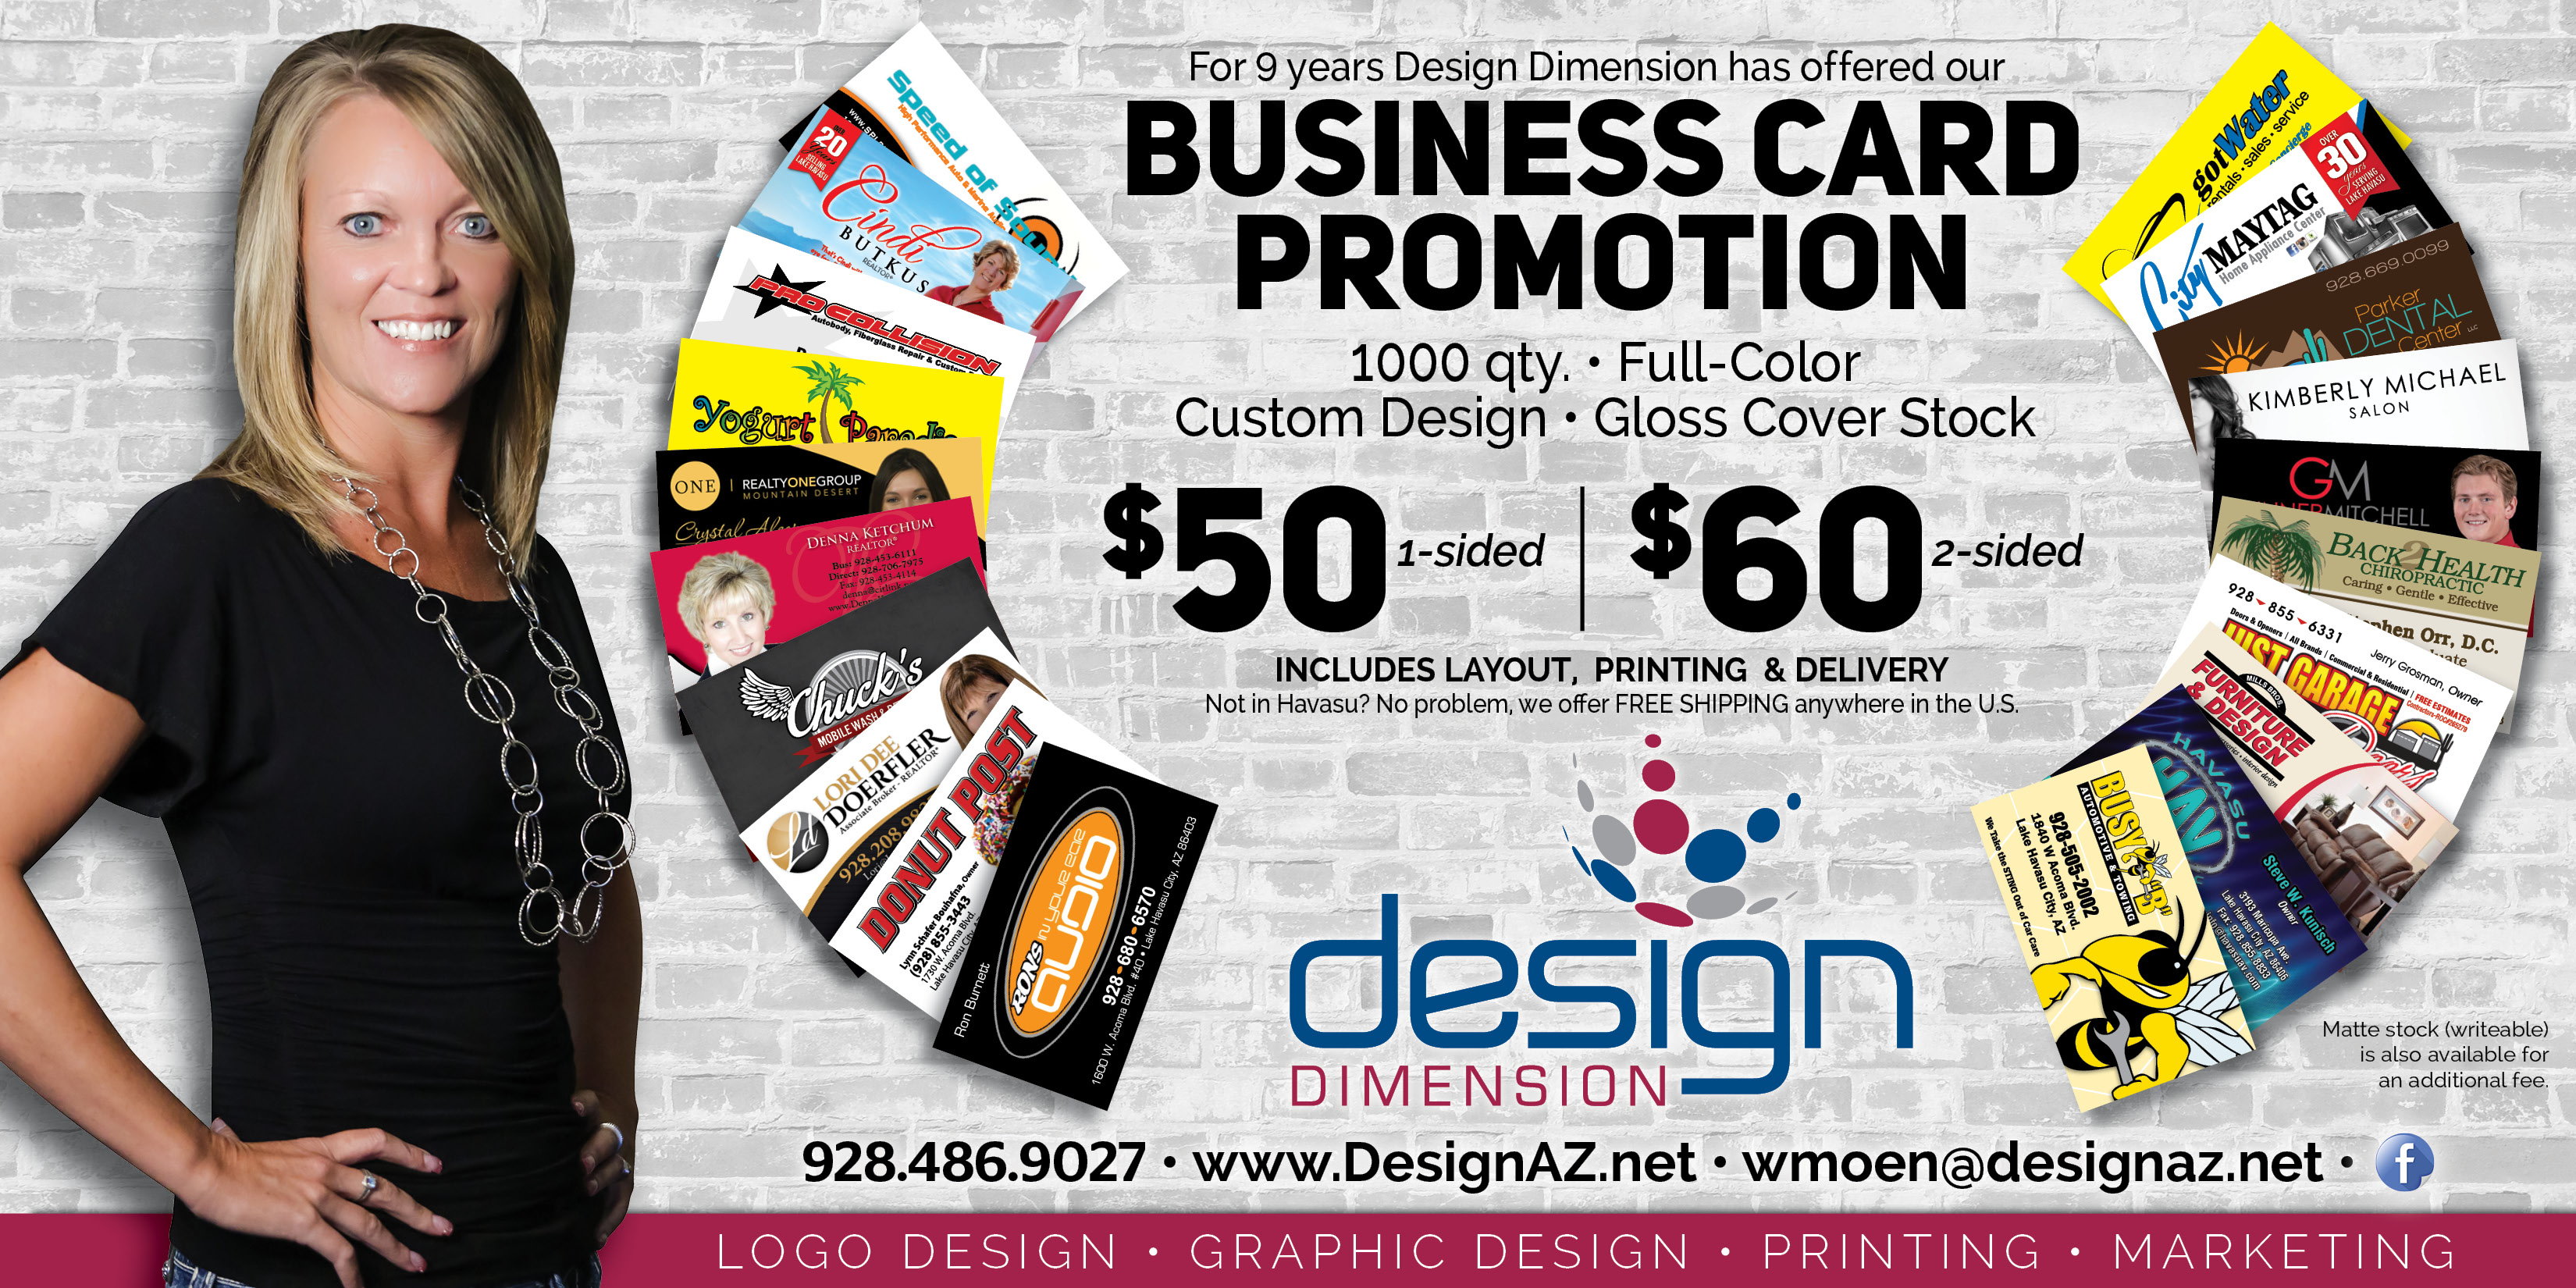 Design Dimension - Business Card Promo